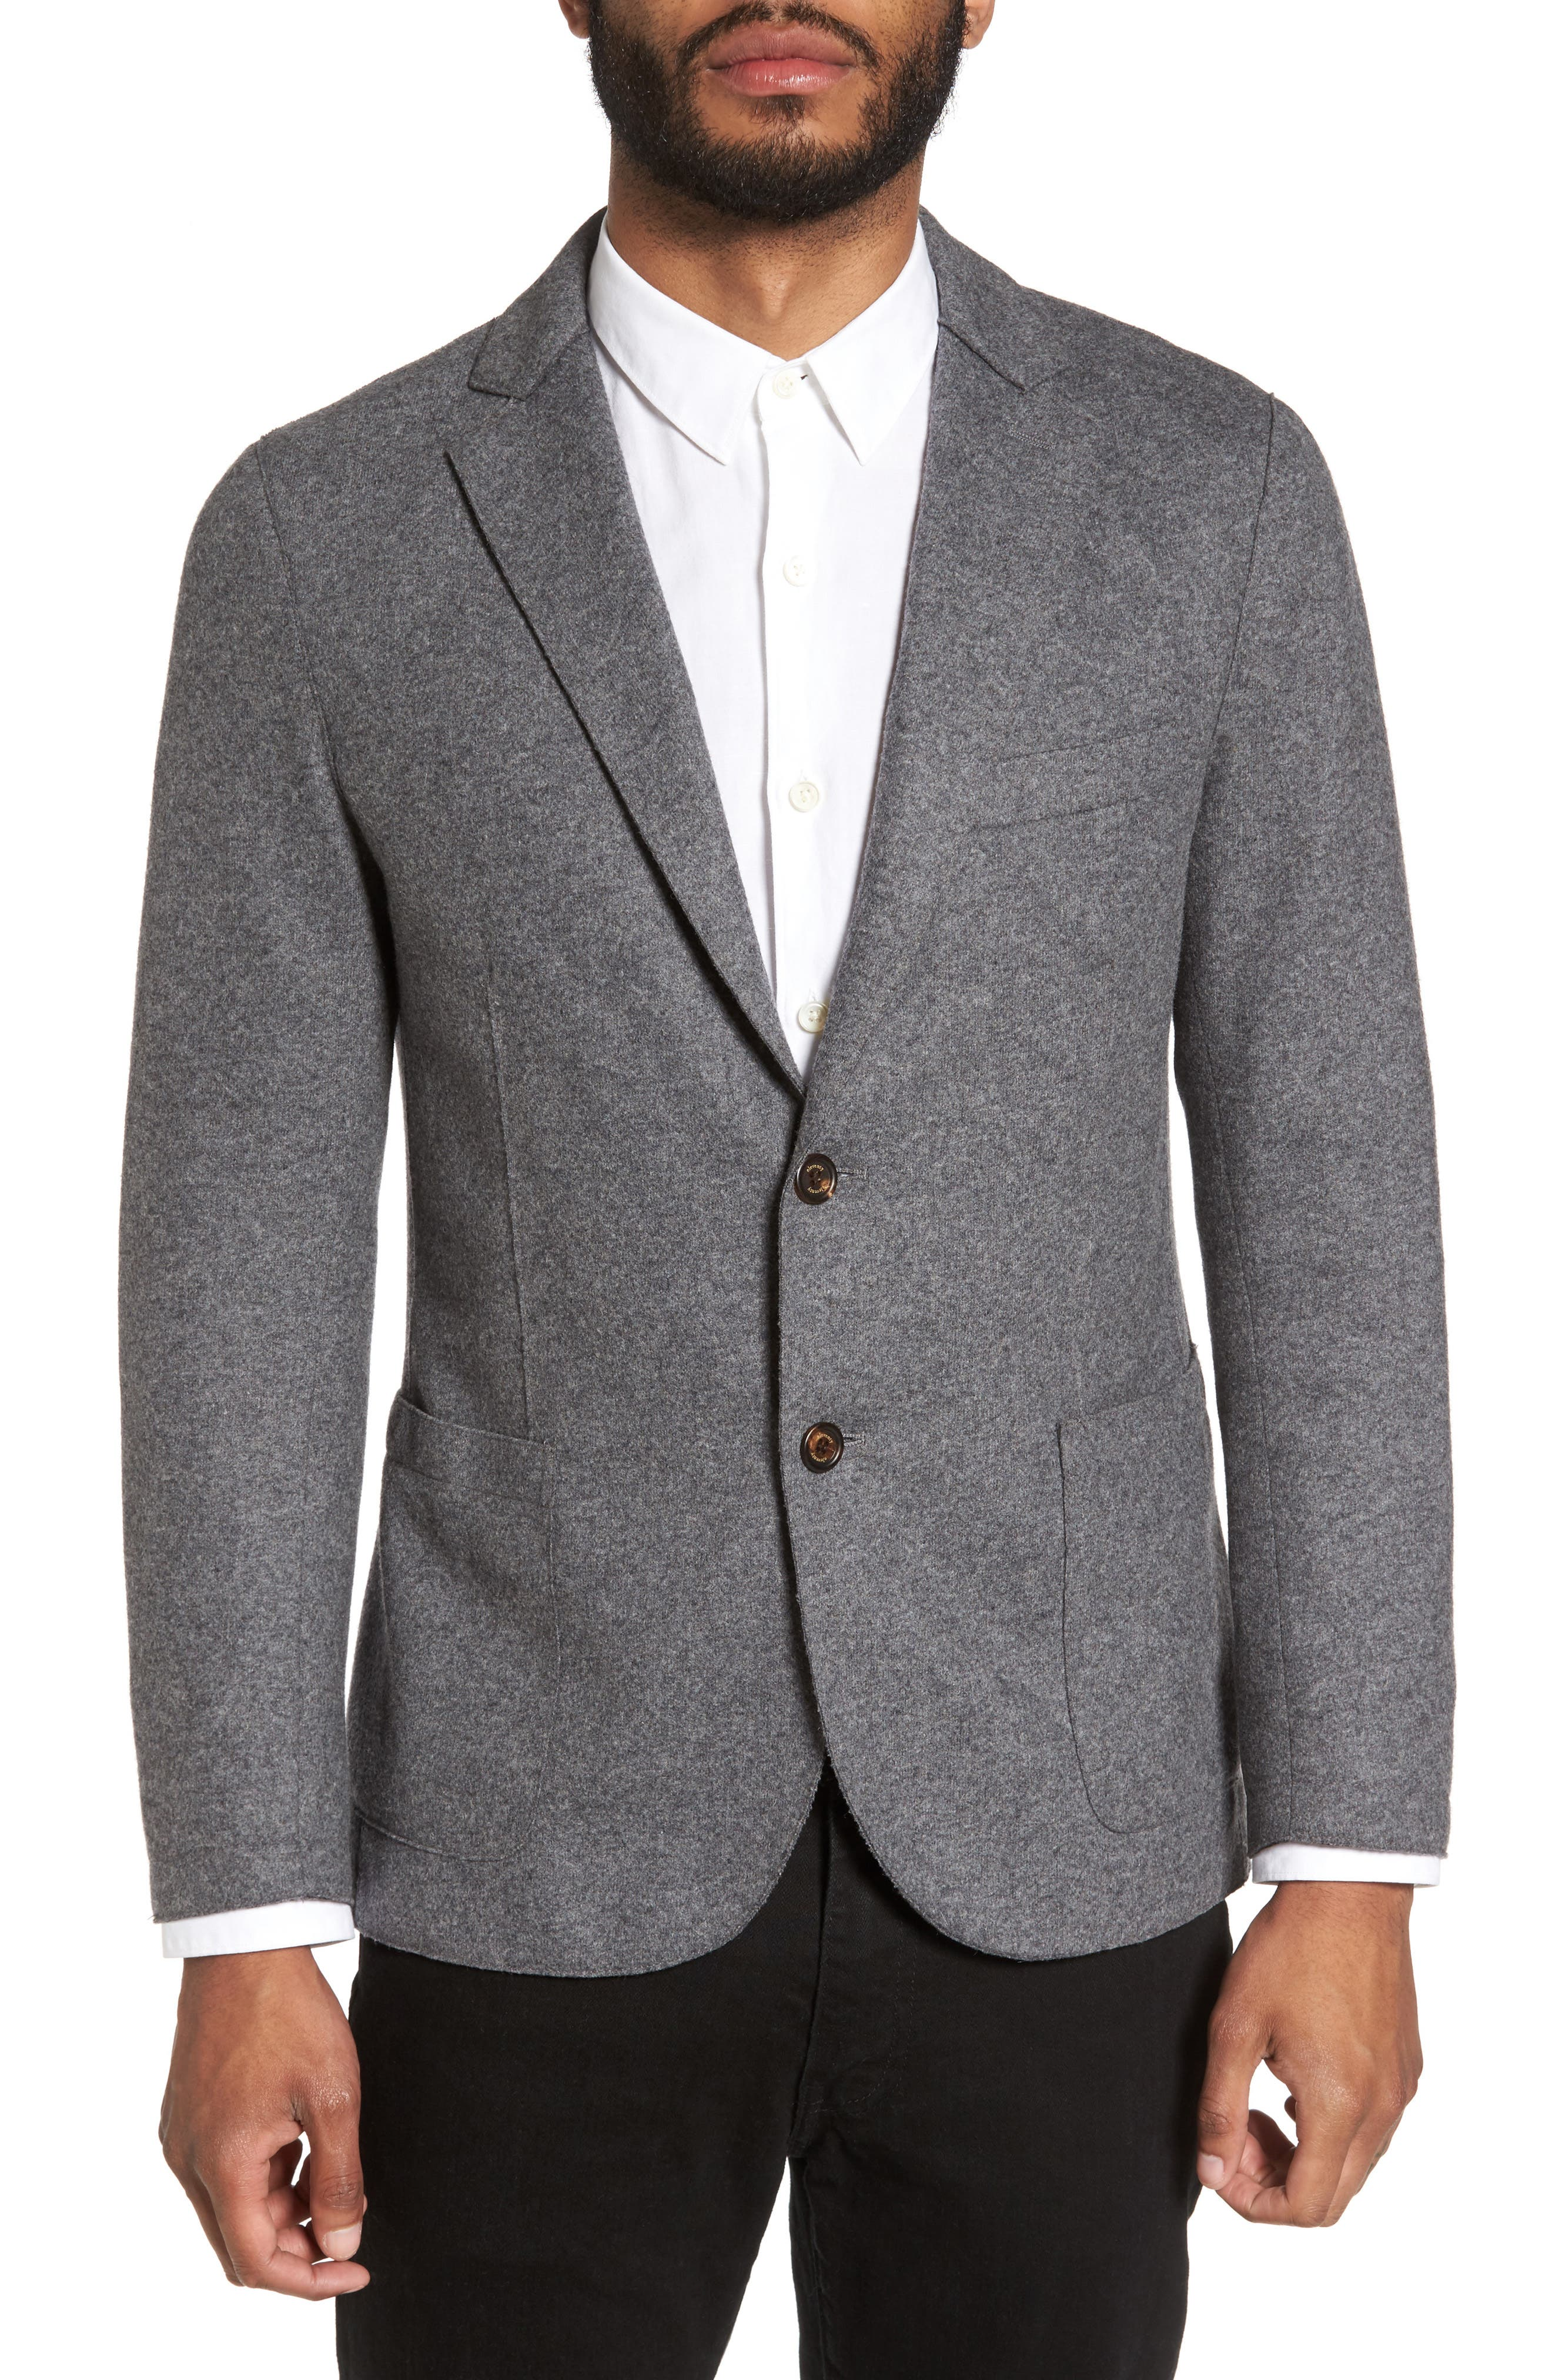 Wool Blend Blazer,                             Main thumbnail 1, color,                             Smoke Grey Melange